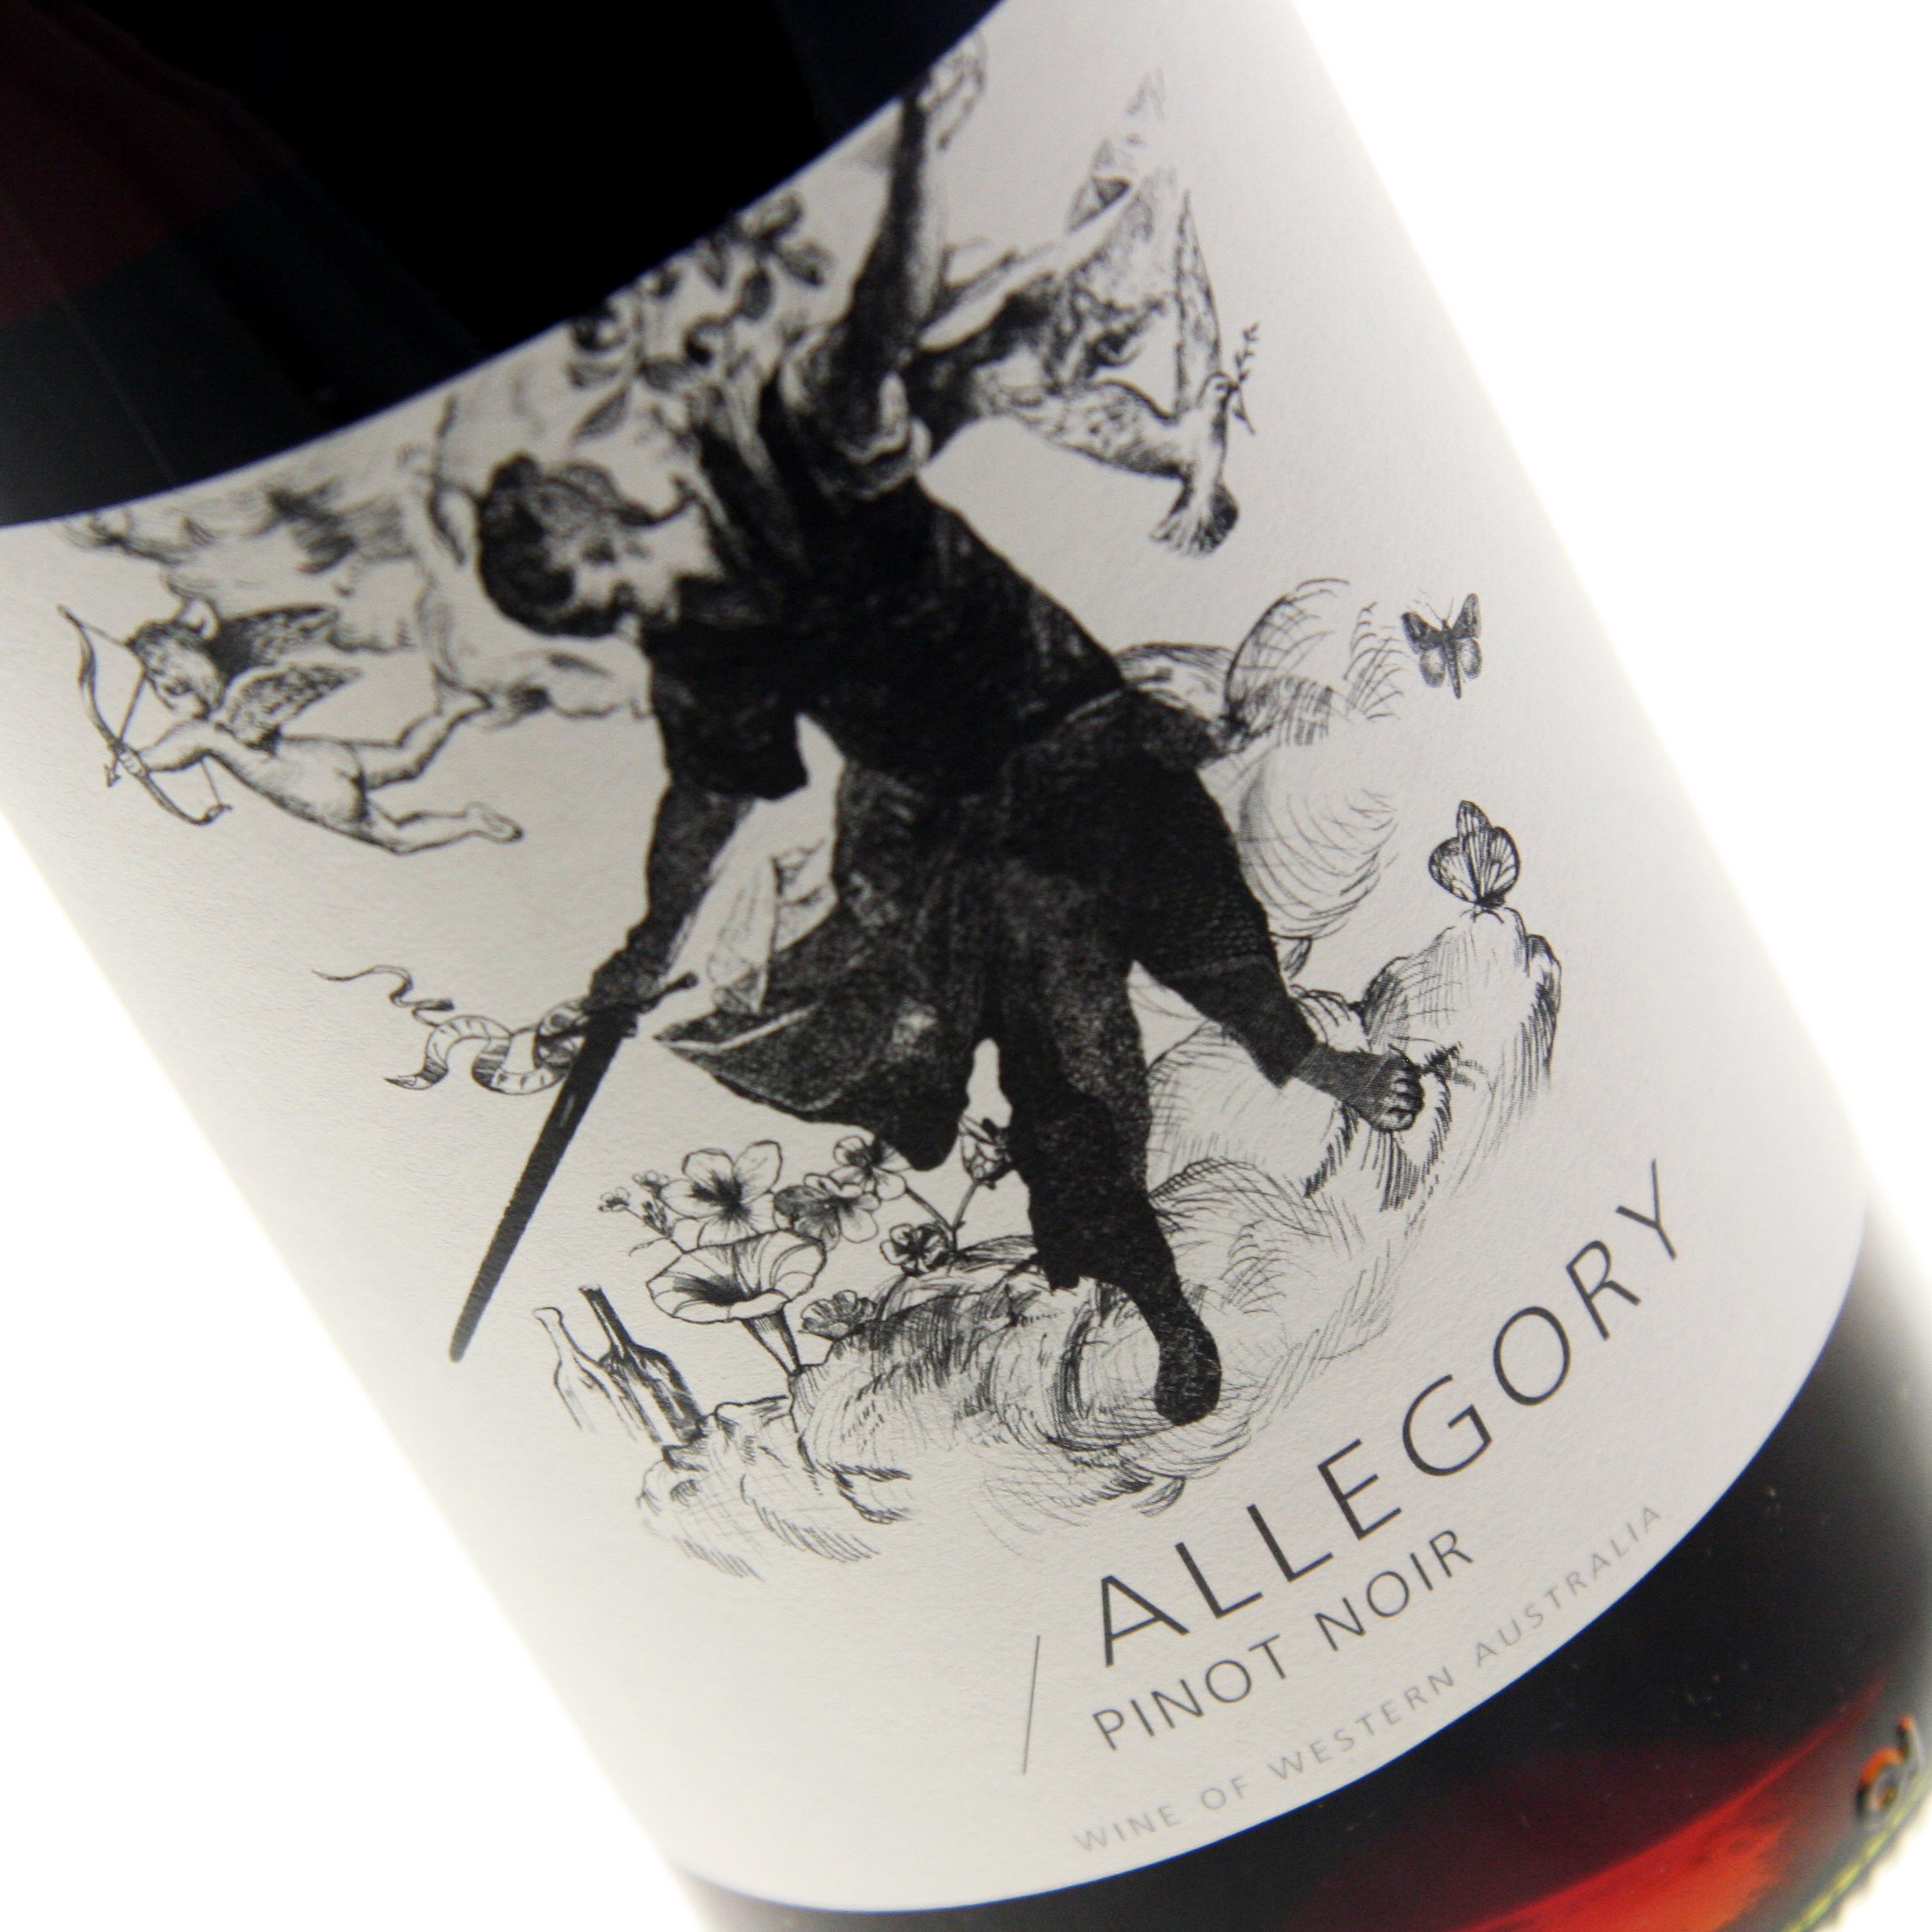 Allegory - Pinot Noir 2017 12x 75cl Bottles